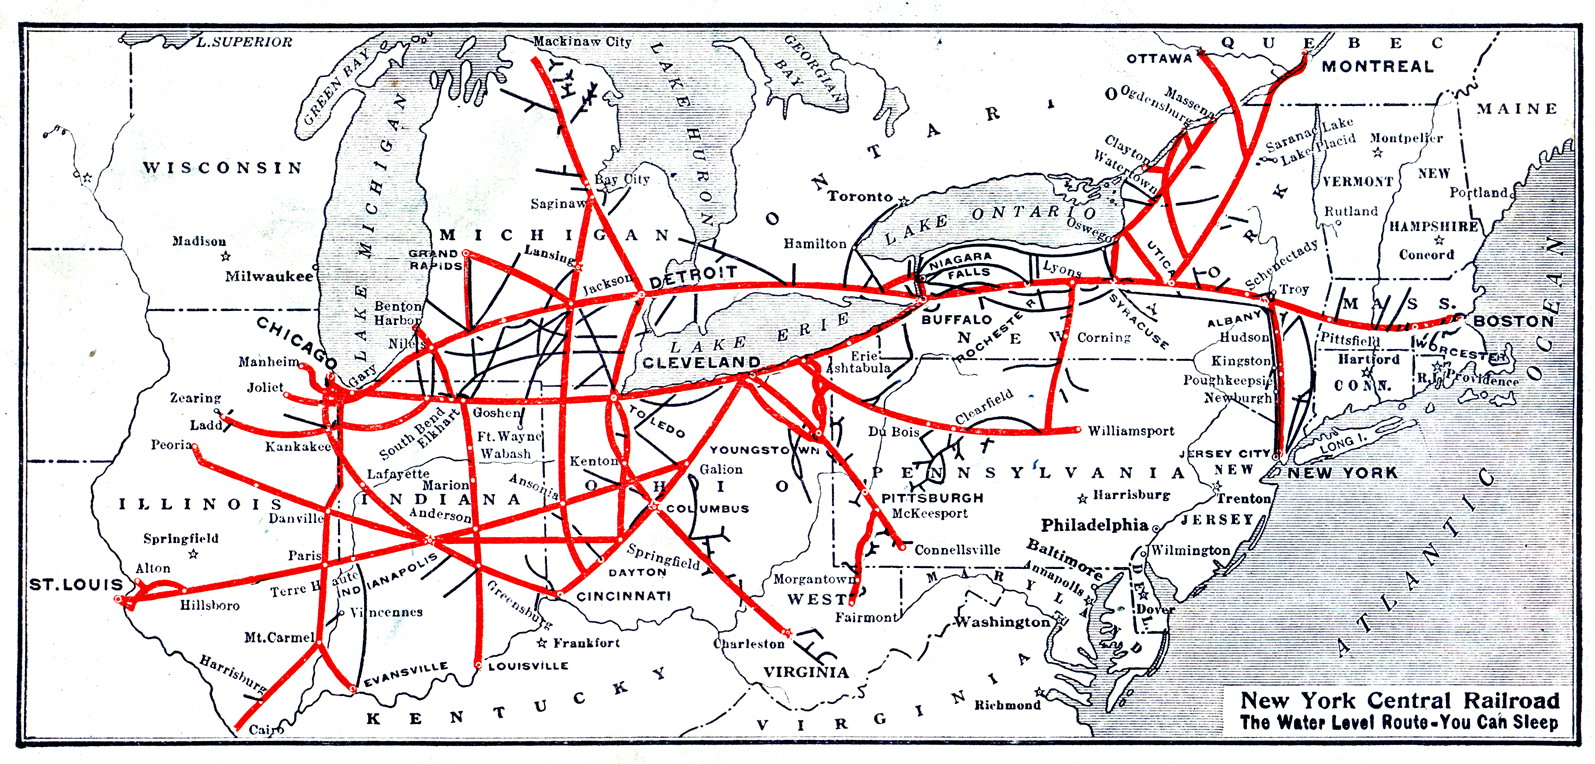 FileNew York Central Railroad System map 1926thjpg Wikimedia Commons